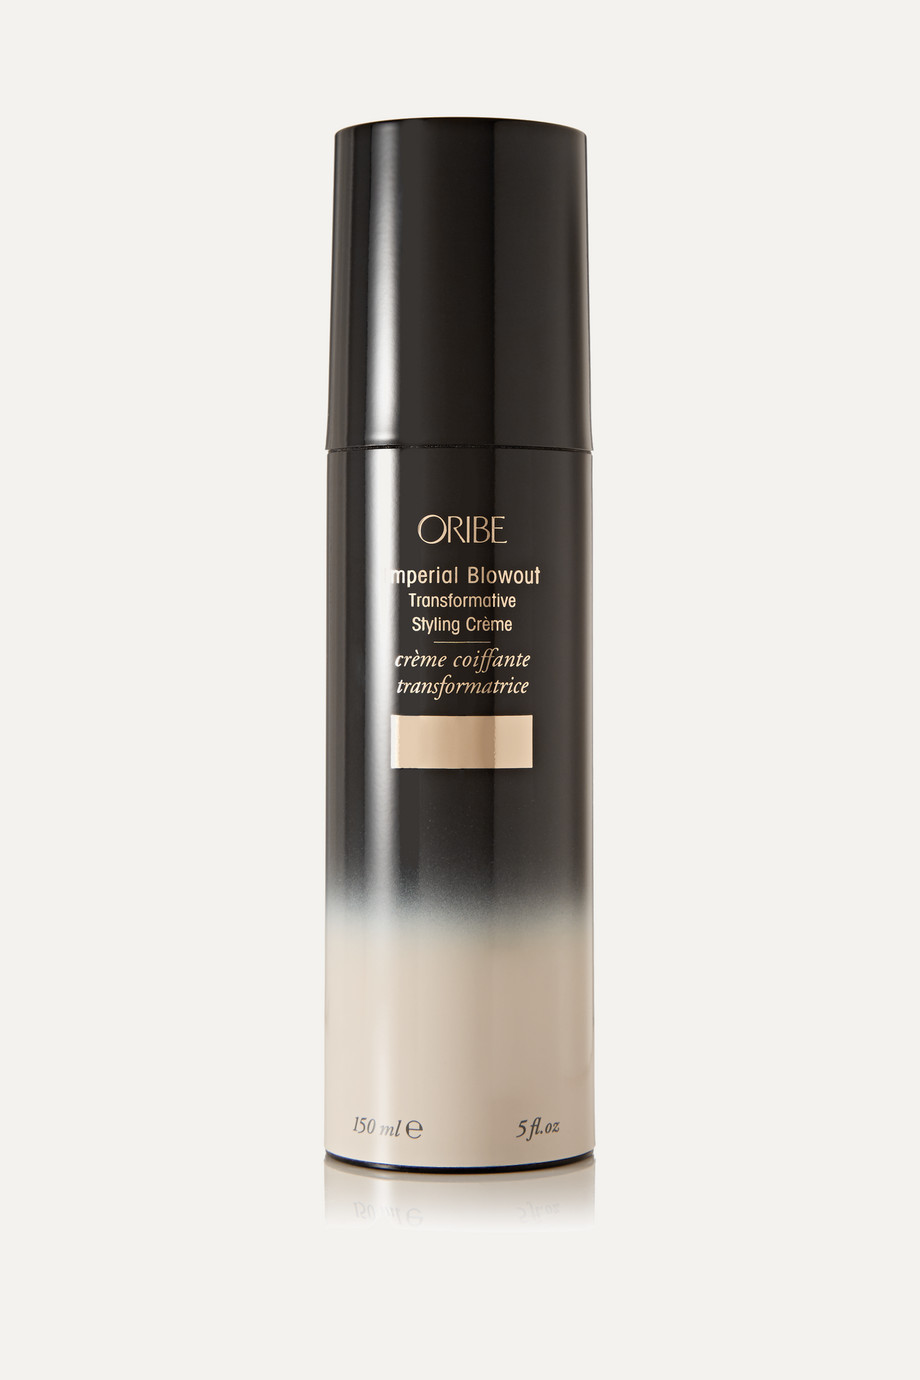 Imperial Blowout Transformative Styling Crème, 150ml, by Oribe